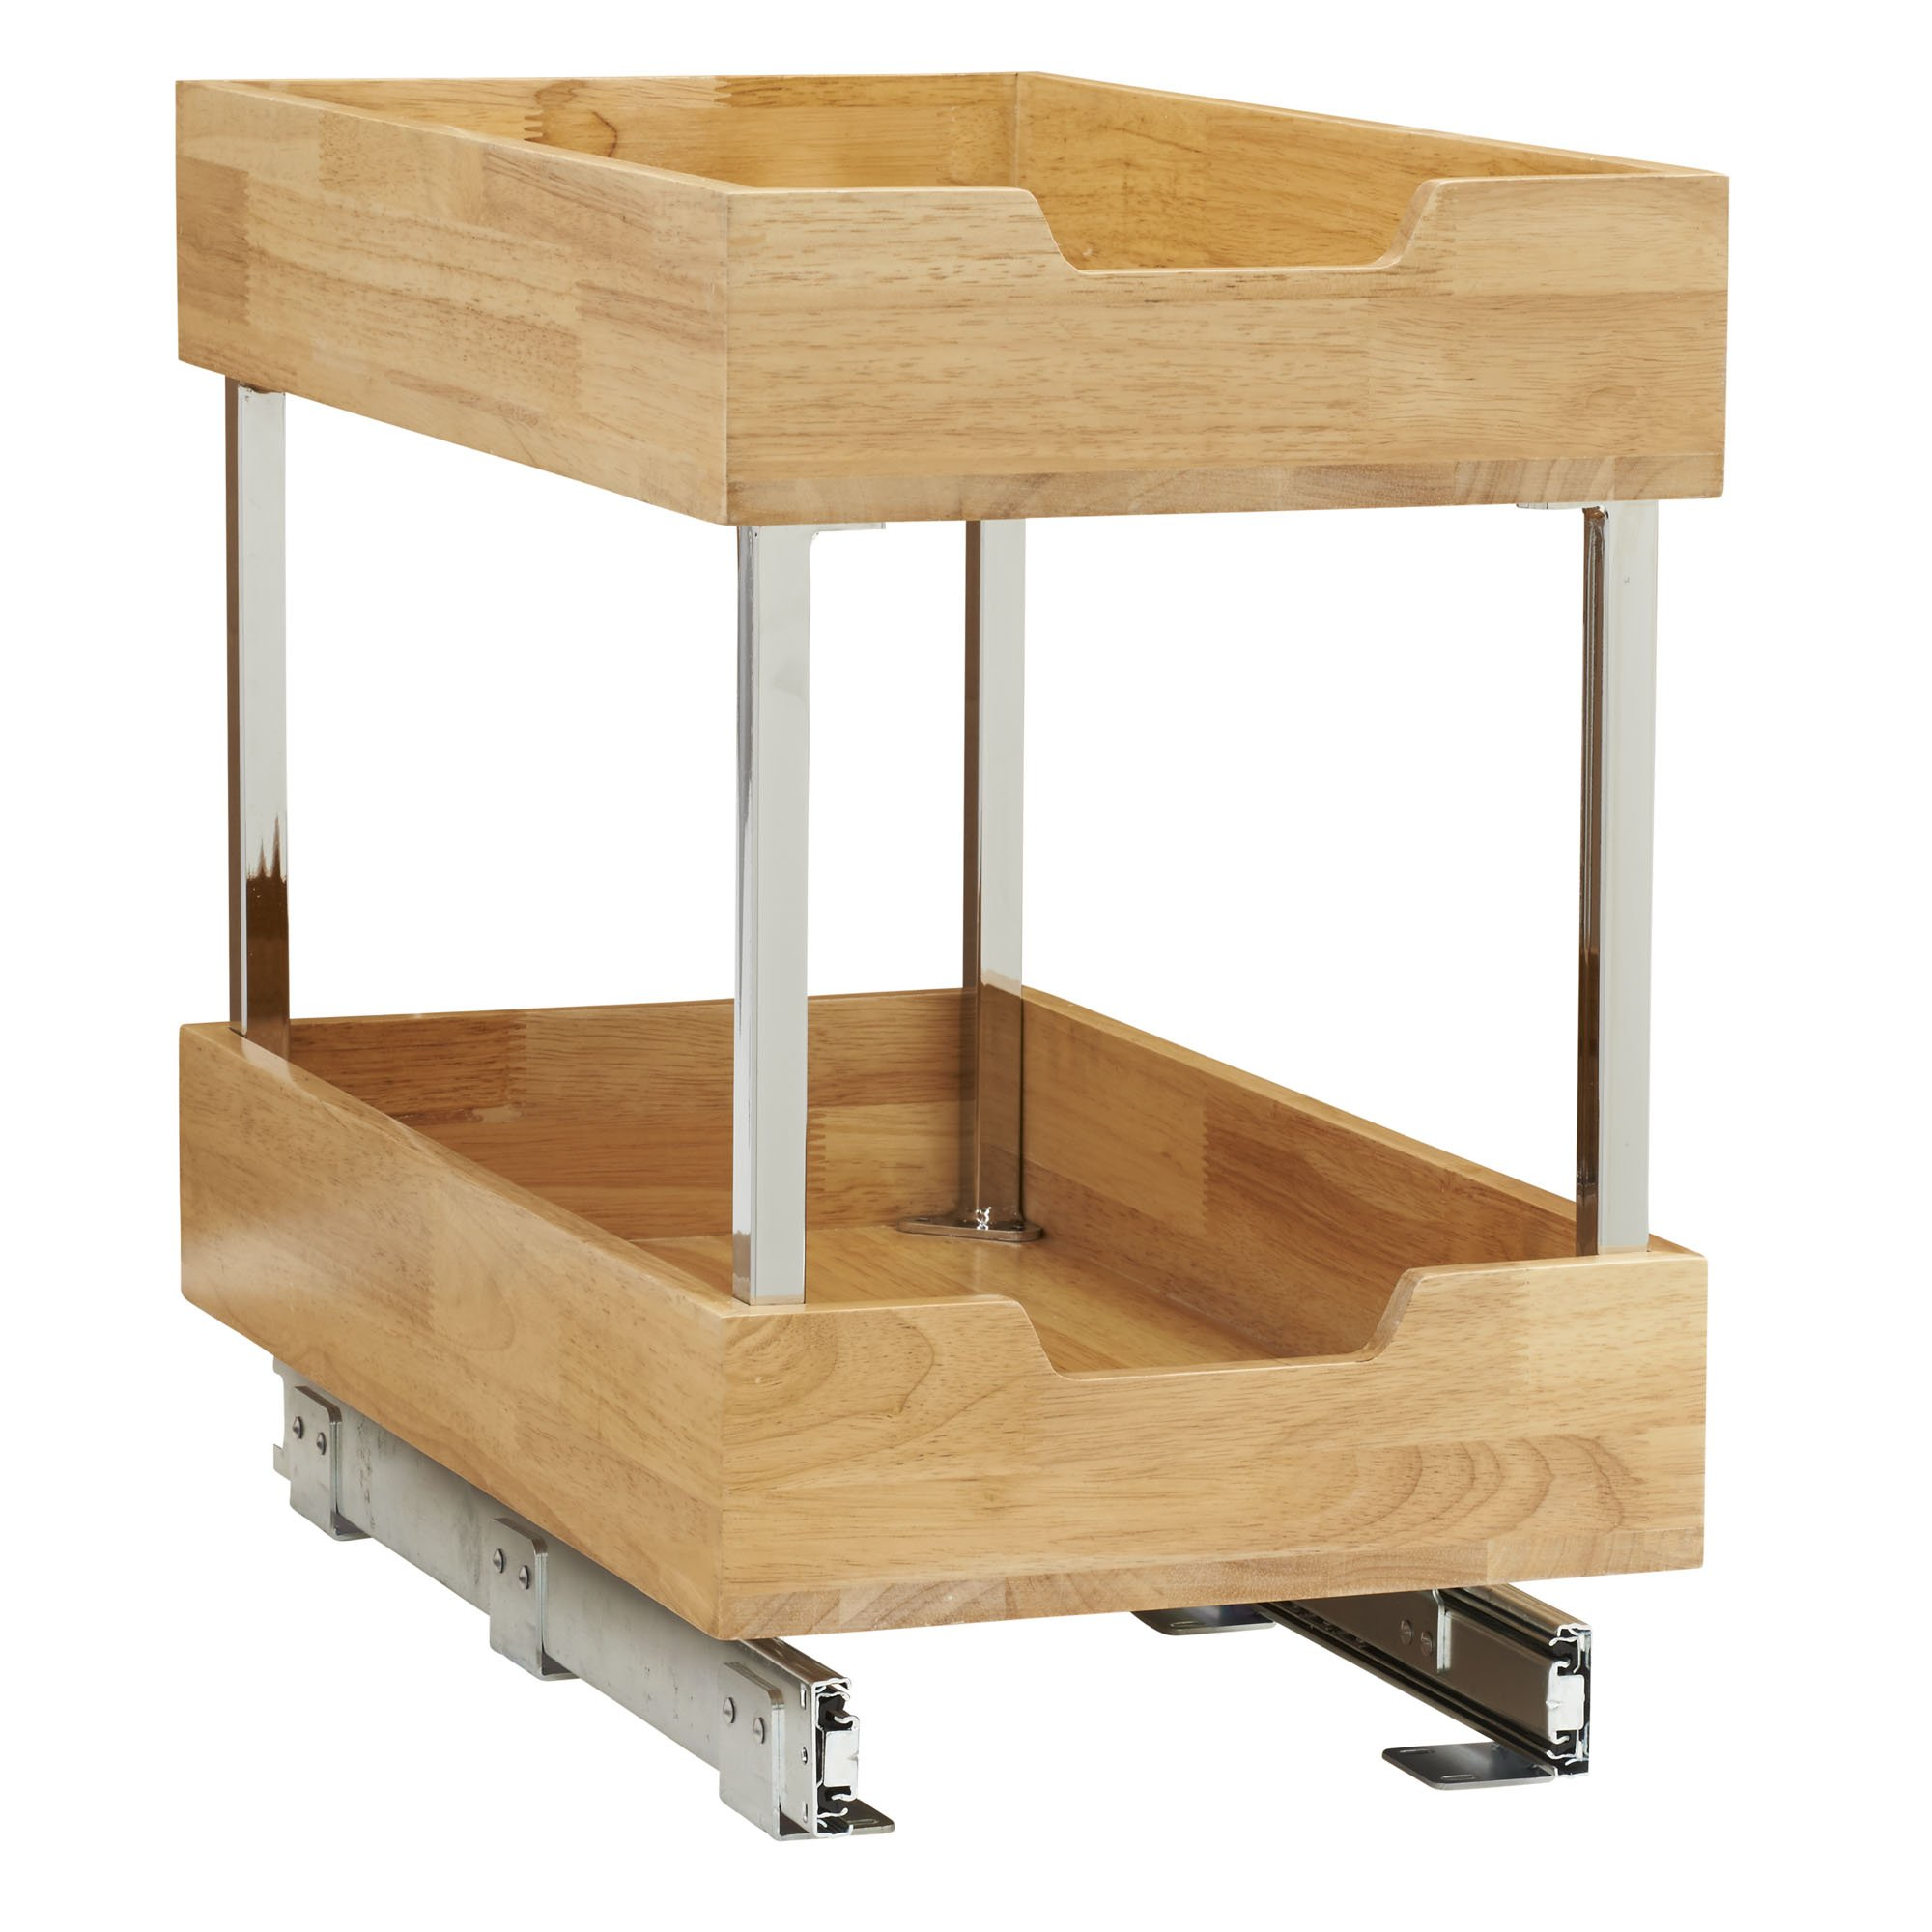 Household Essentials 24221-1 Glidez 2-Tier Sliding Organizer - Pull Out Cabinet Shelf - Wood - 11.5 Inches Wide